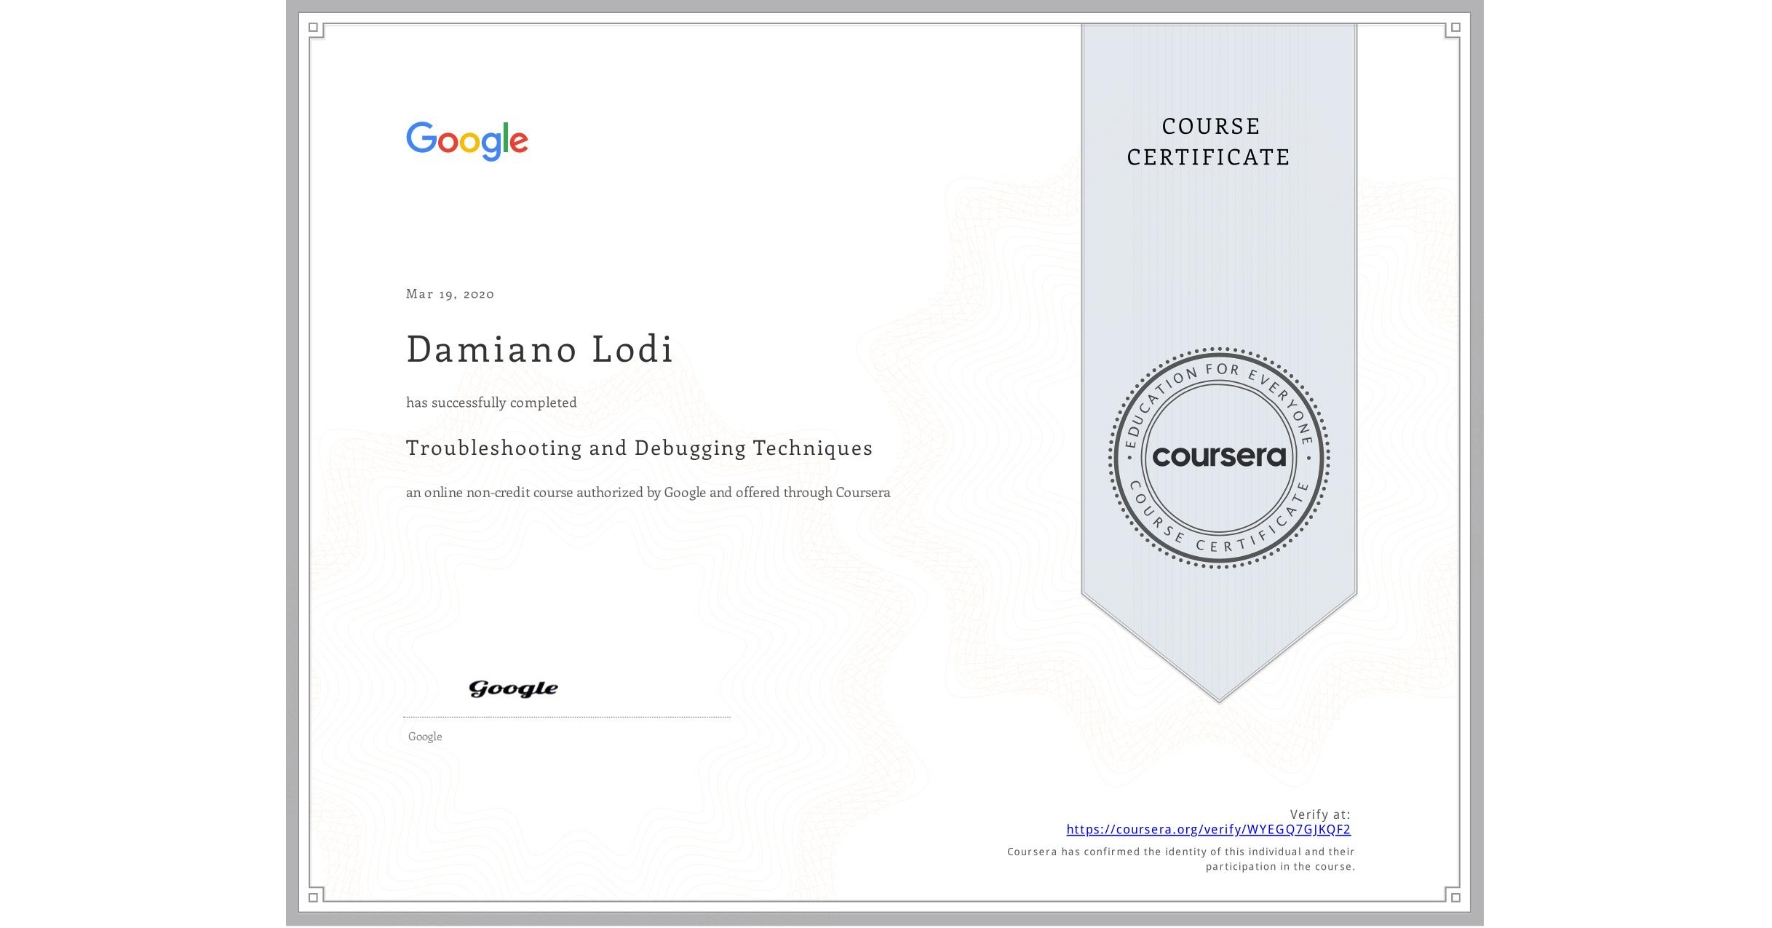 View certificate for Damiano Lodi, Troubleshooting and Debugging Techniques, an online non-credit course authorized by Google and offered through Coursera